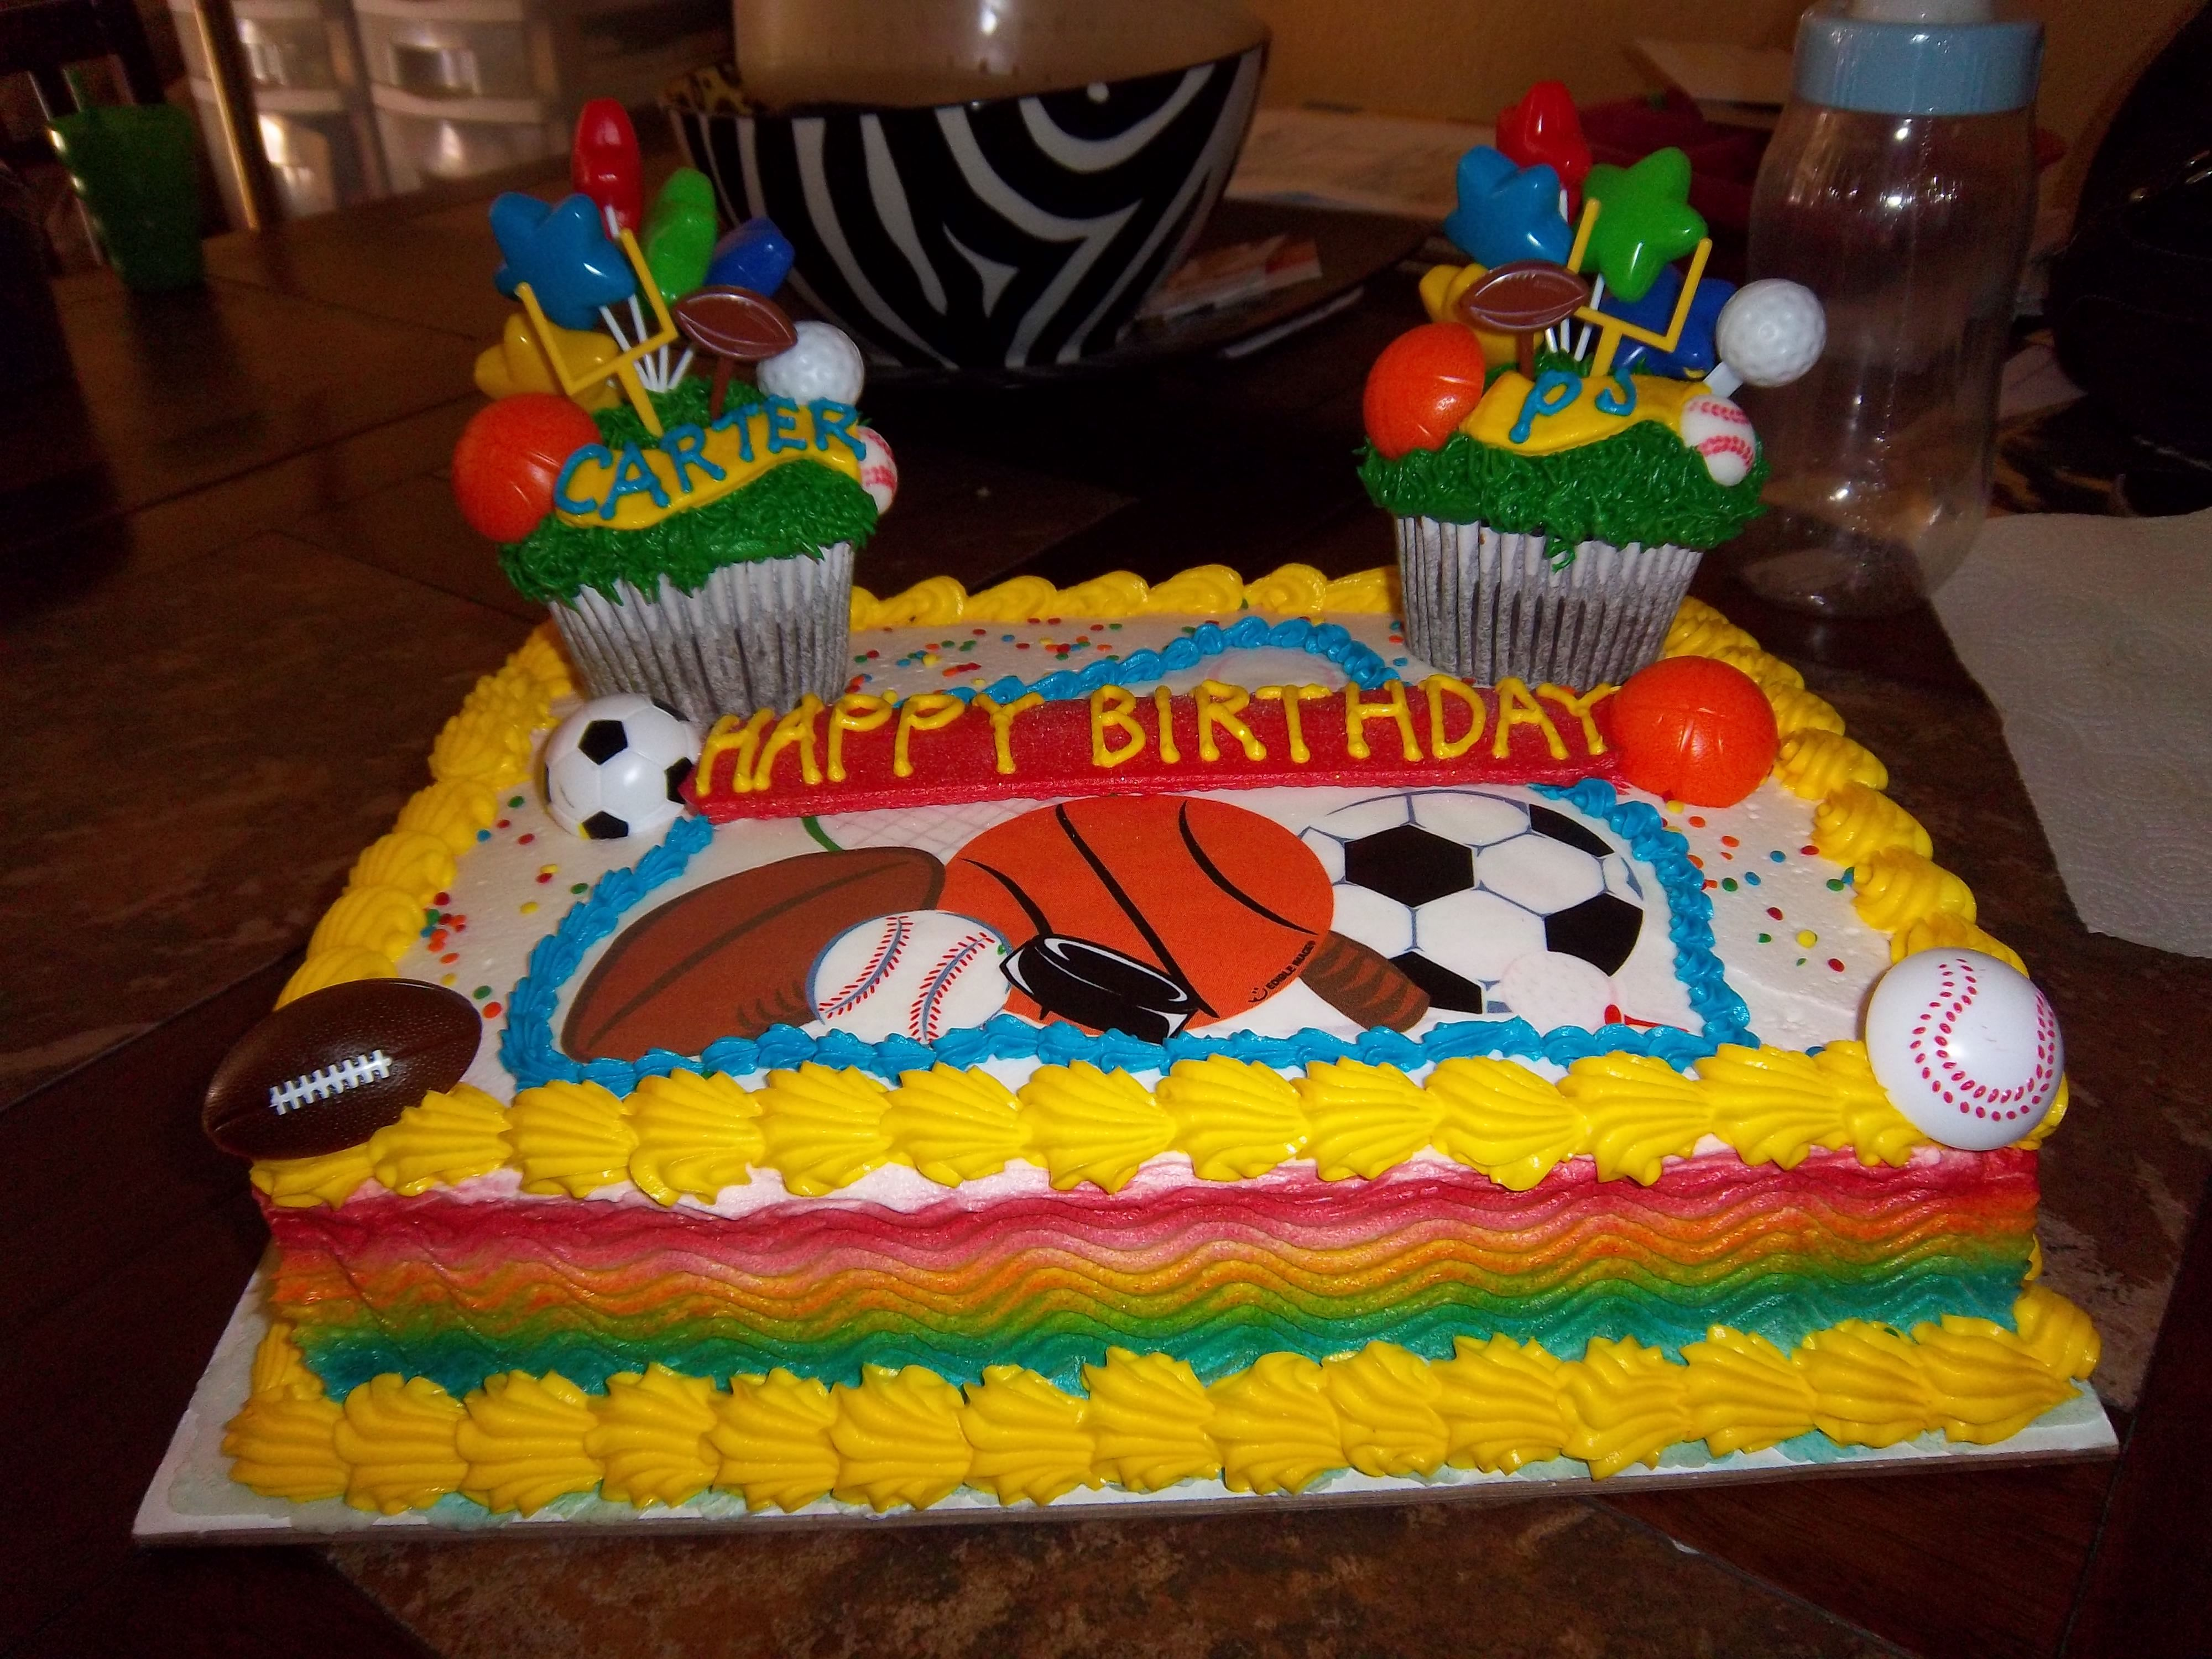 Sports Birthday Cake For Two Brothers They Each Get Their